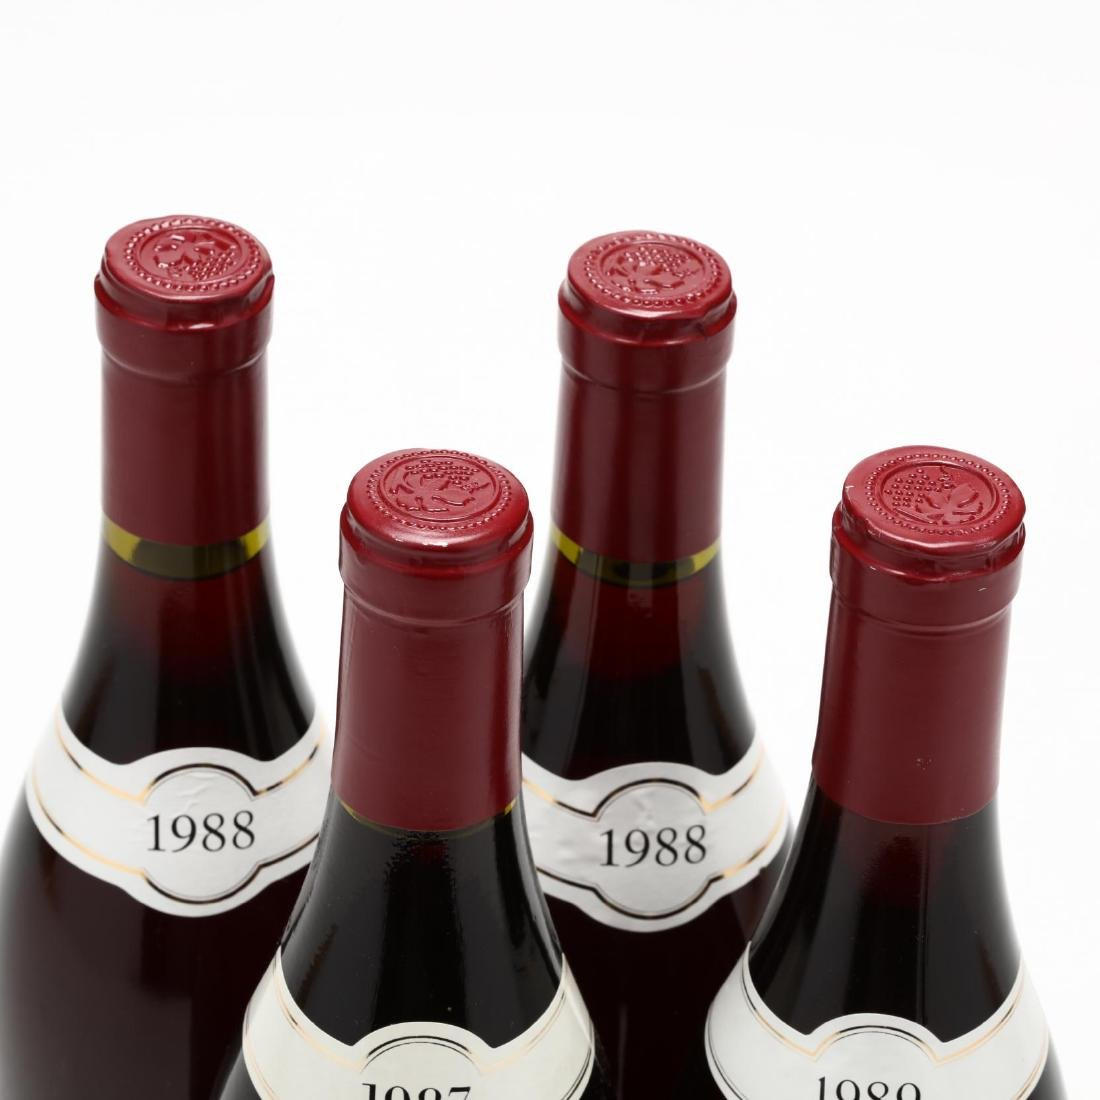 1987-1989 Nuits St. Georges Vertical - 3